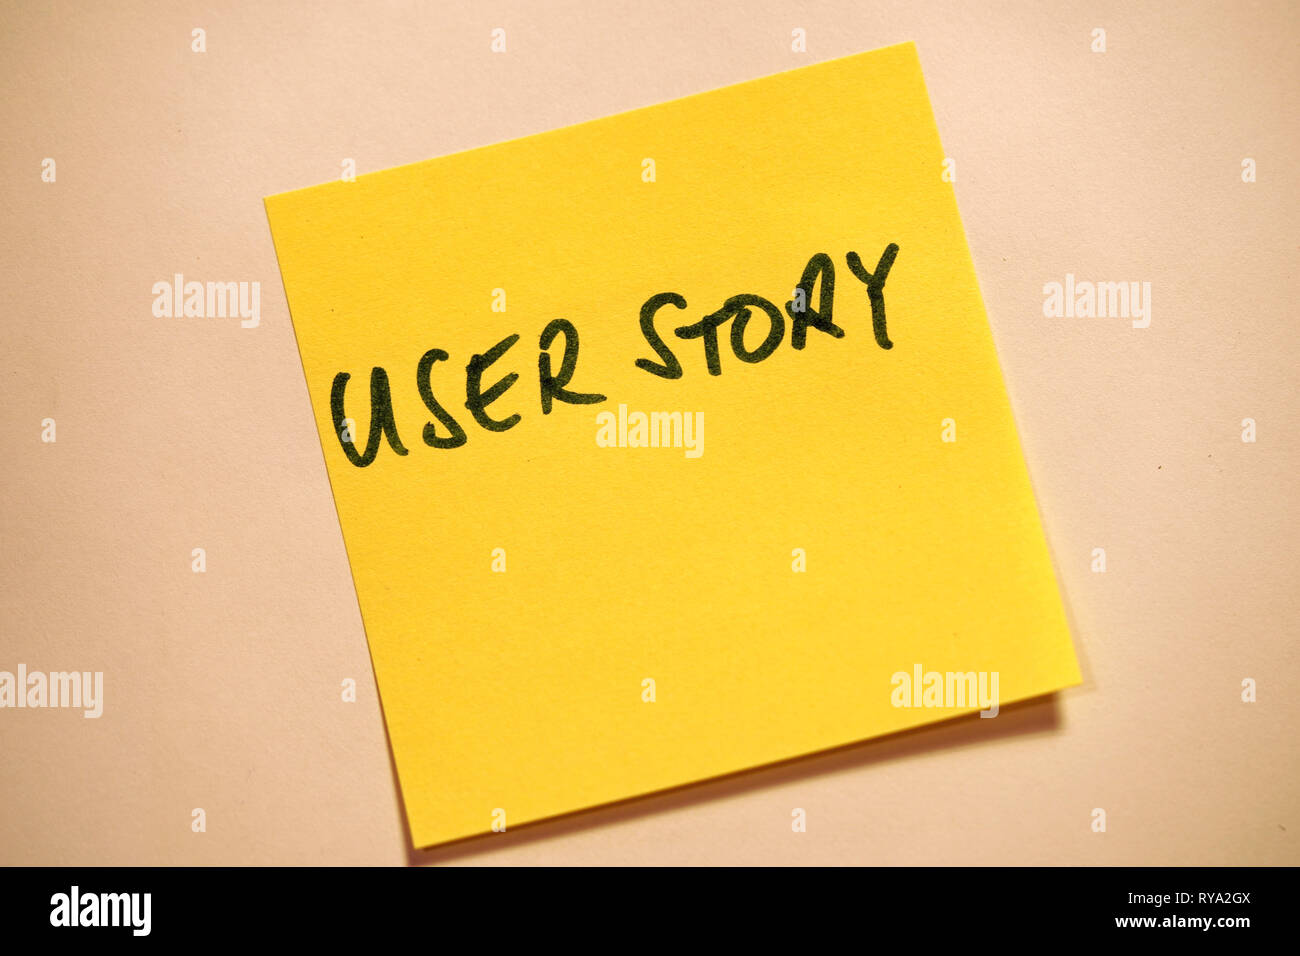 Yellow Sticky Note Scrum Agile User Story - Stock Image